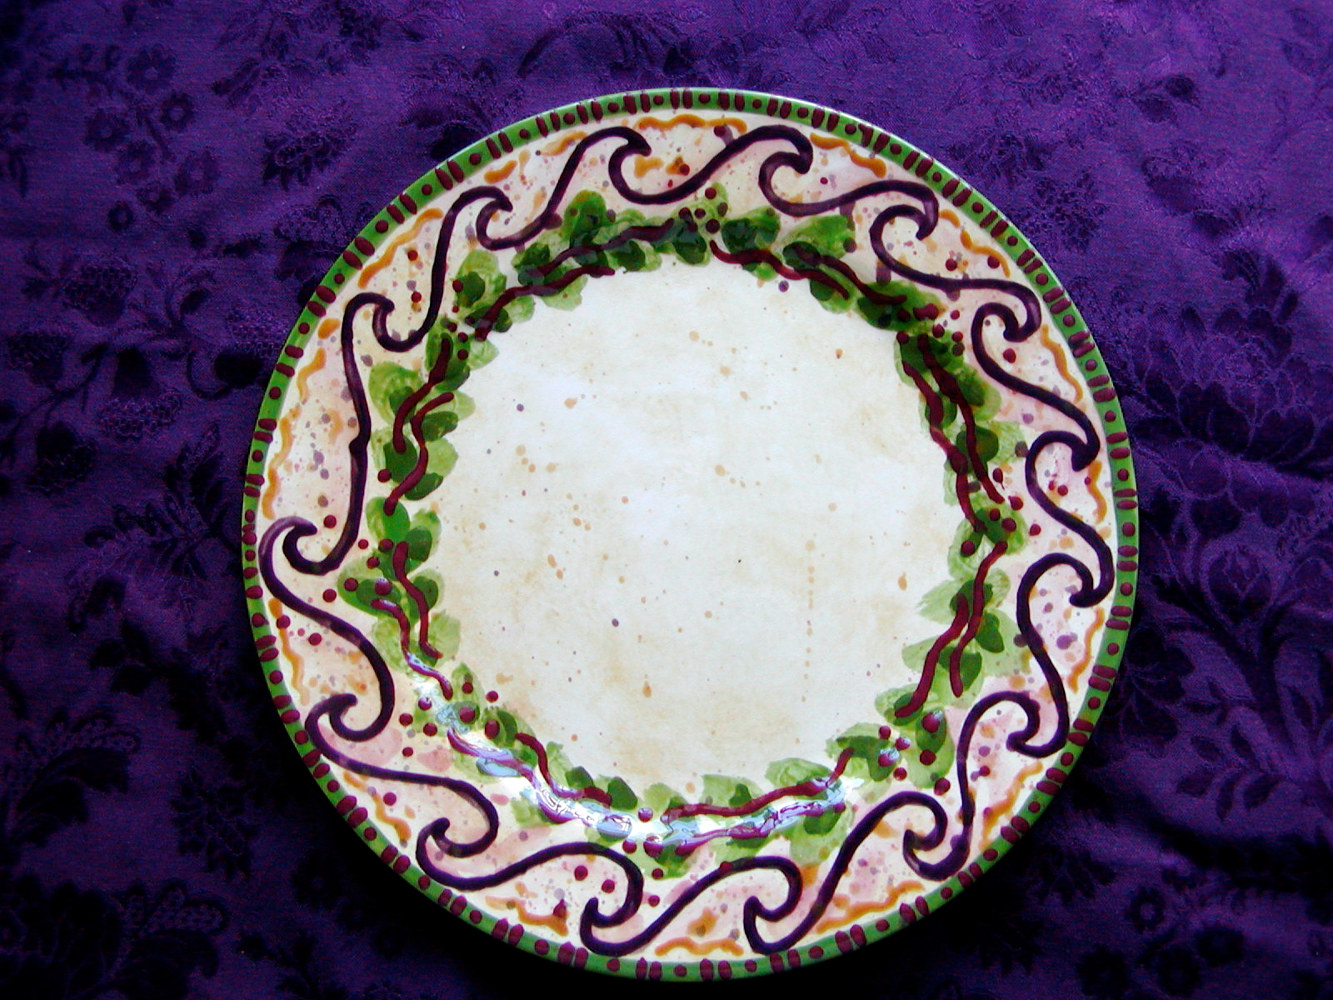 Painting Italianate Eclectic Glazeworks: Dinner Plate Design 5 by Victoria Avila